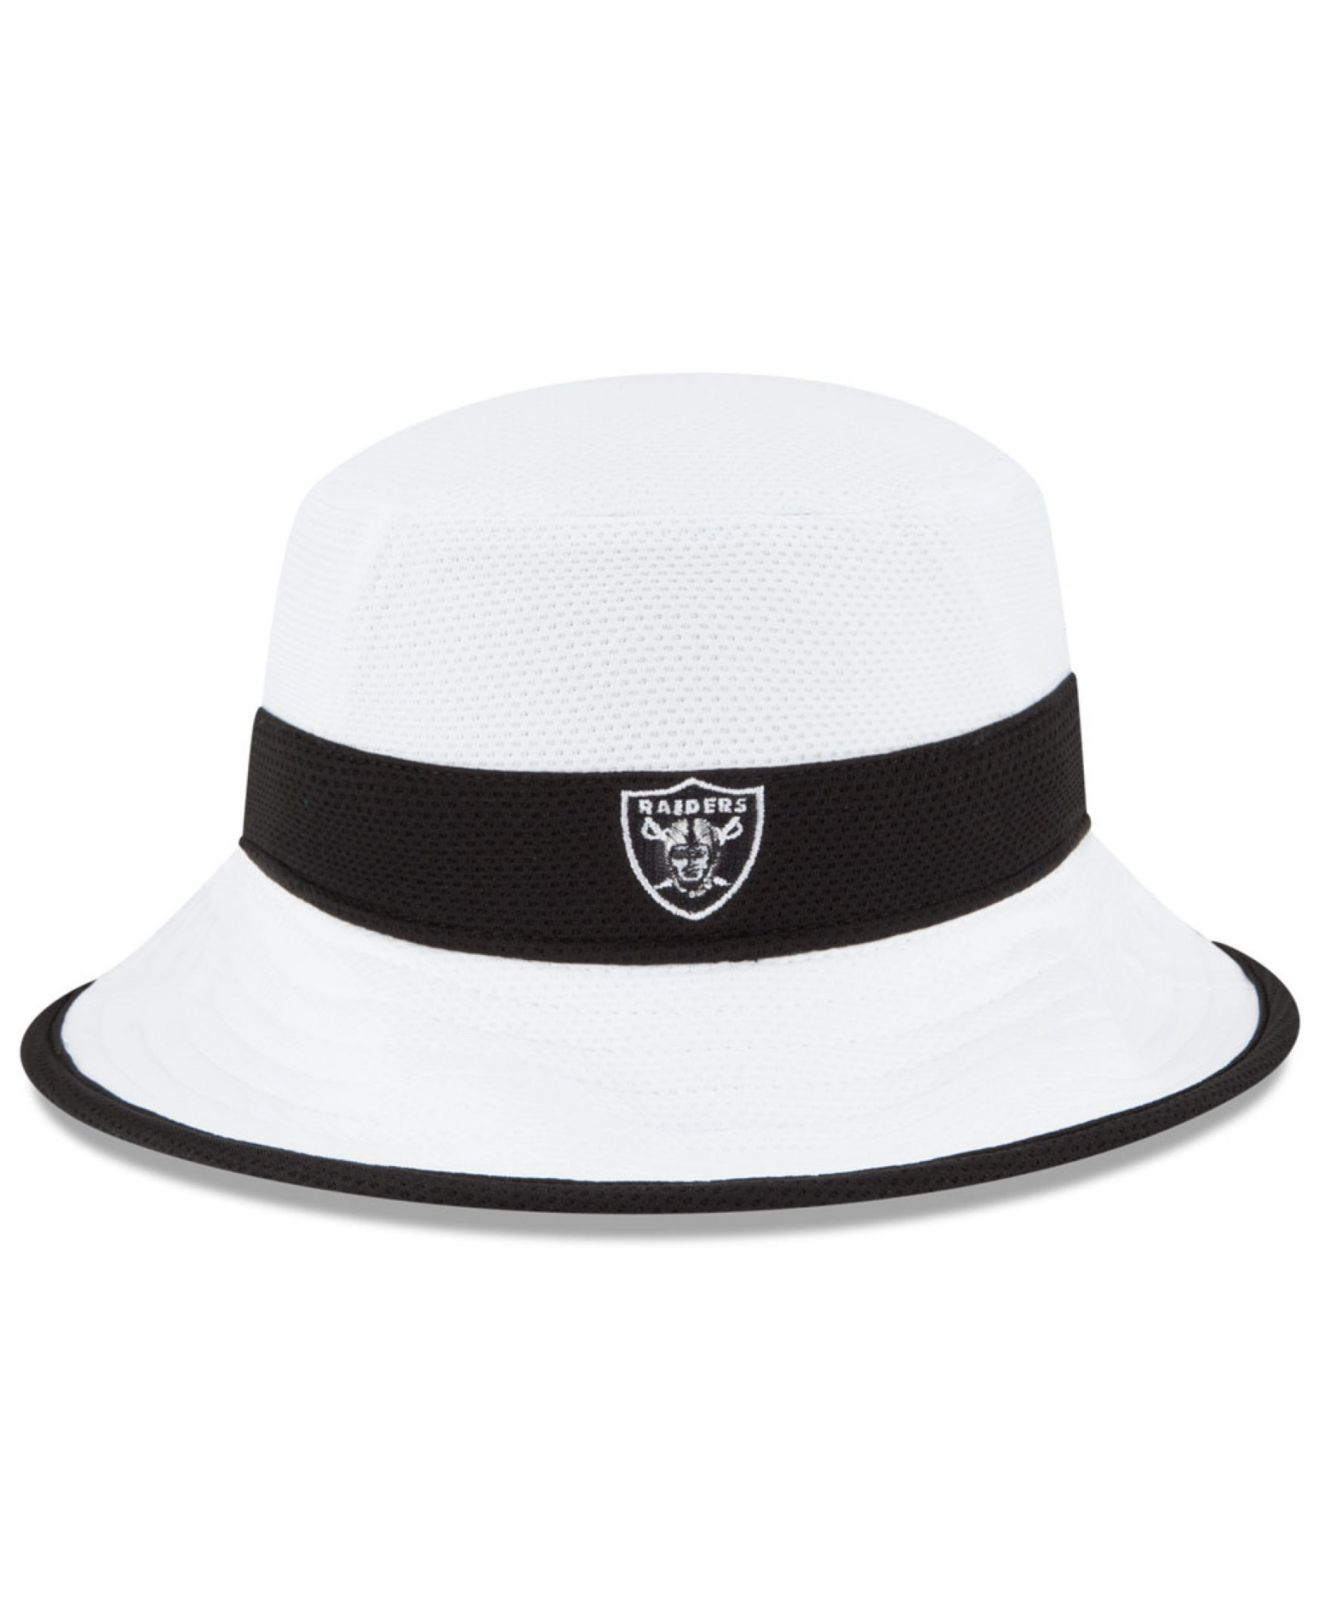 b44b5bcfc007f KTZ Oakland Raiders Training Camp Official Bucket Hat in White for ...